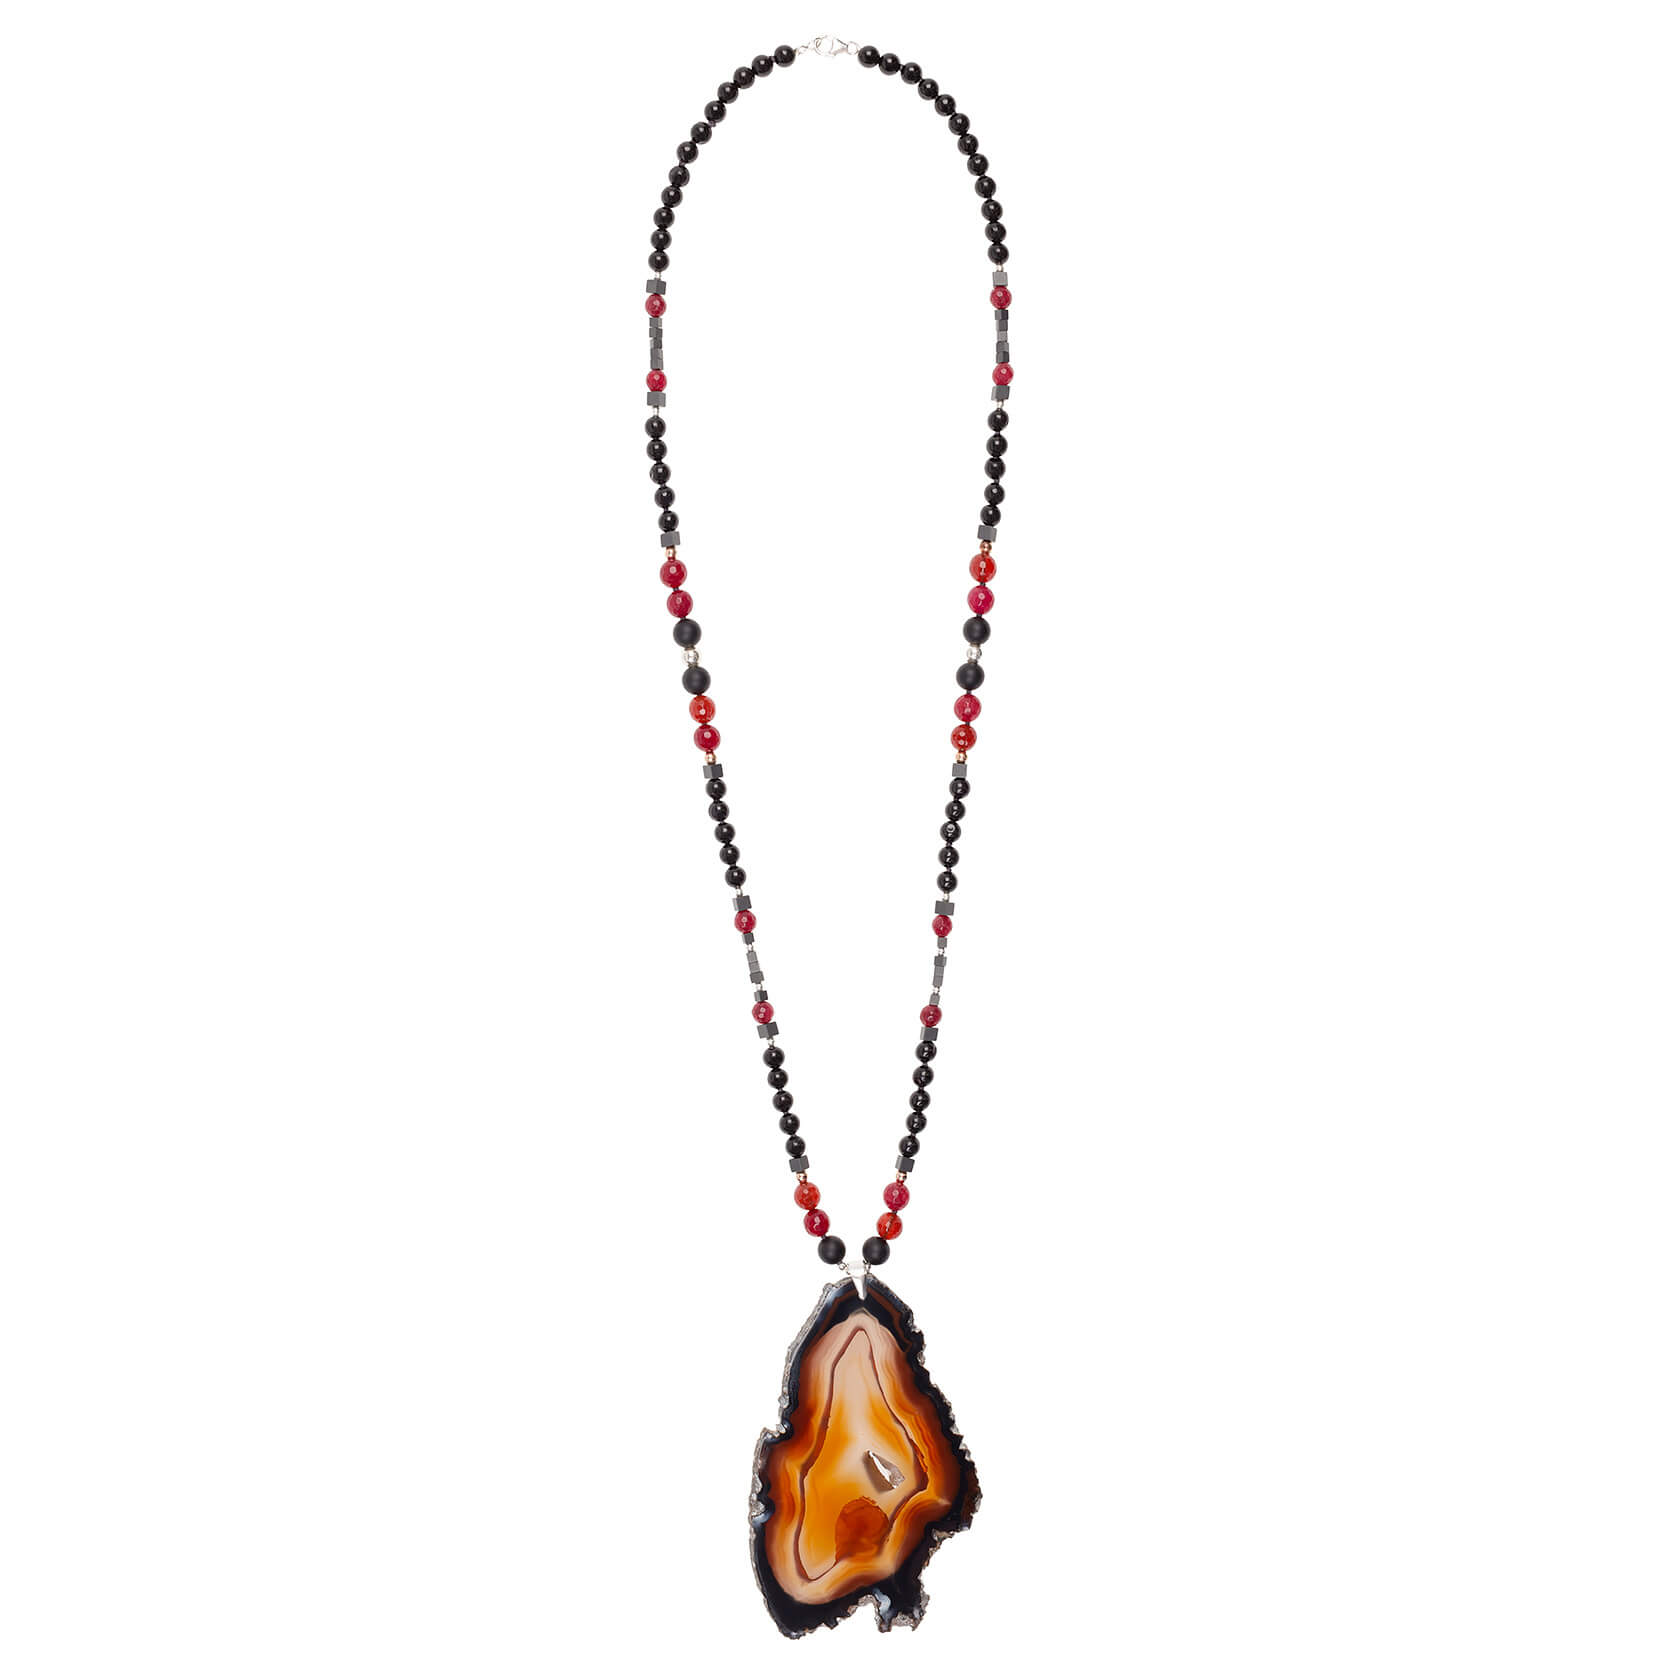 Agate necklace Marybola